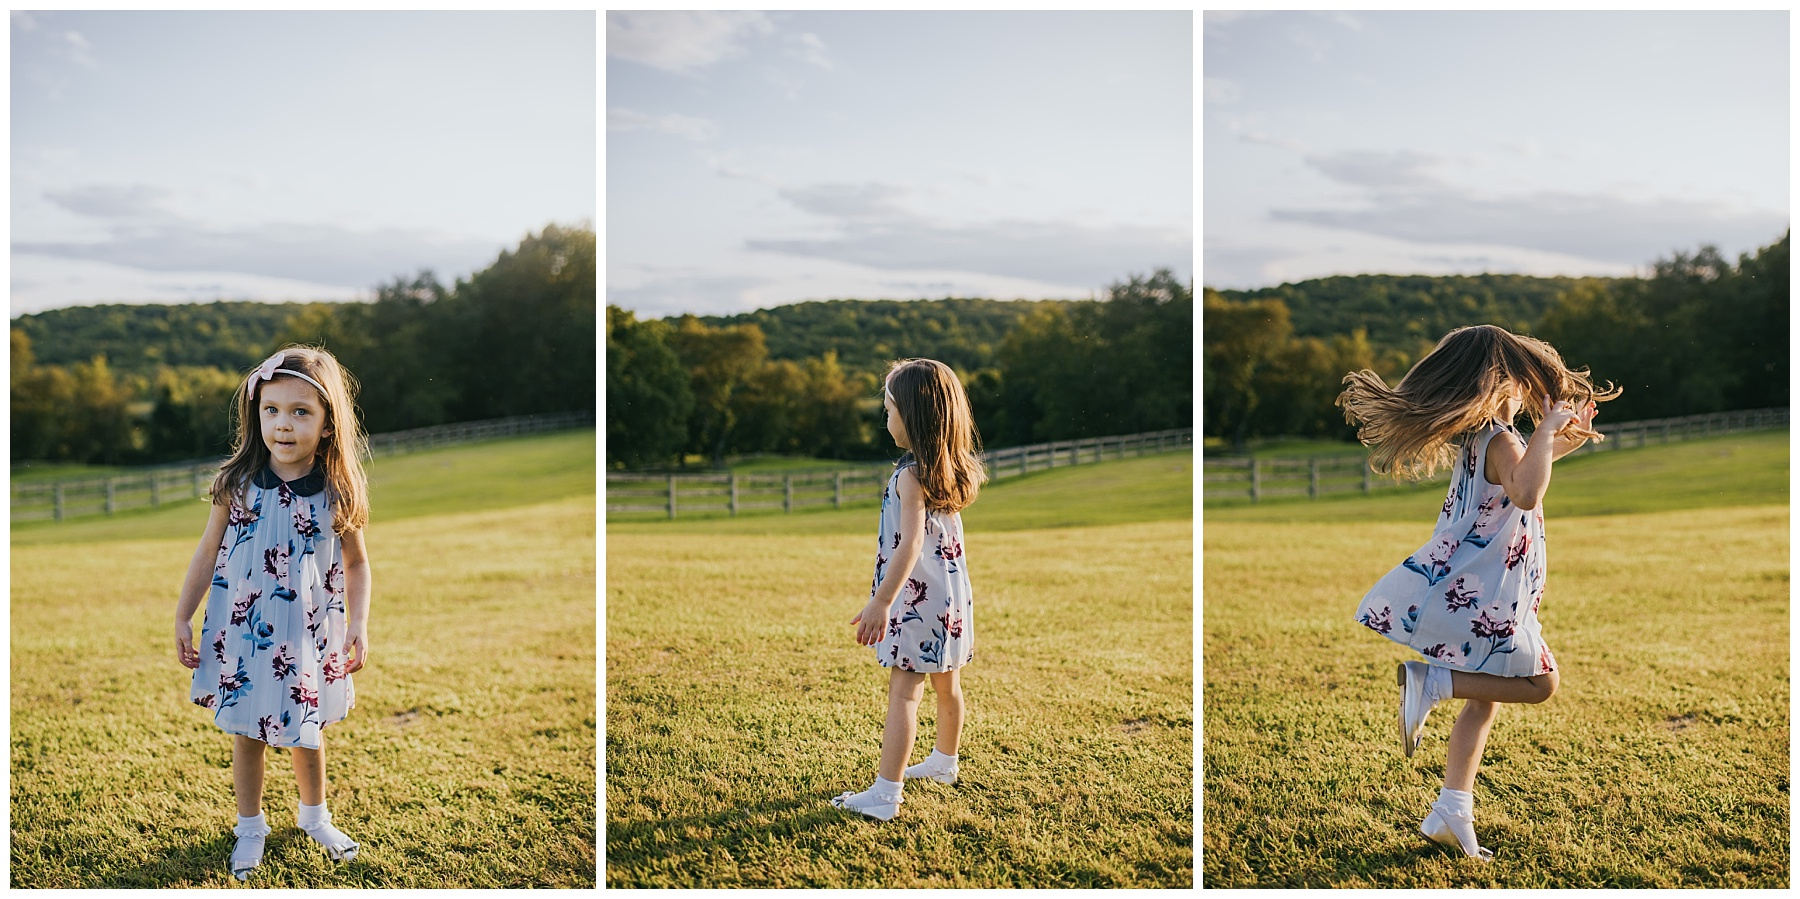 Little girl dancing at a Farm in Fairfield County, Ct Kendra Conroy Photography